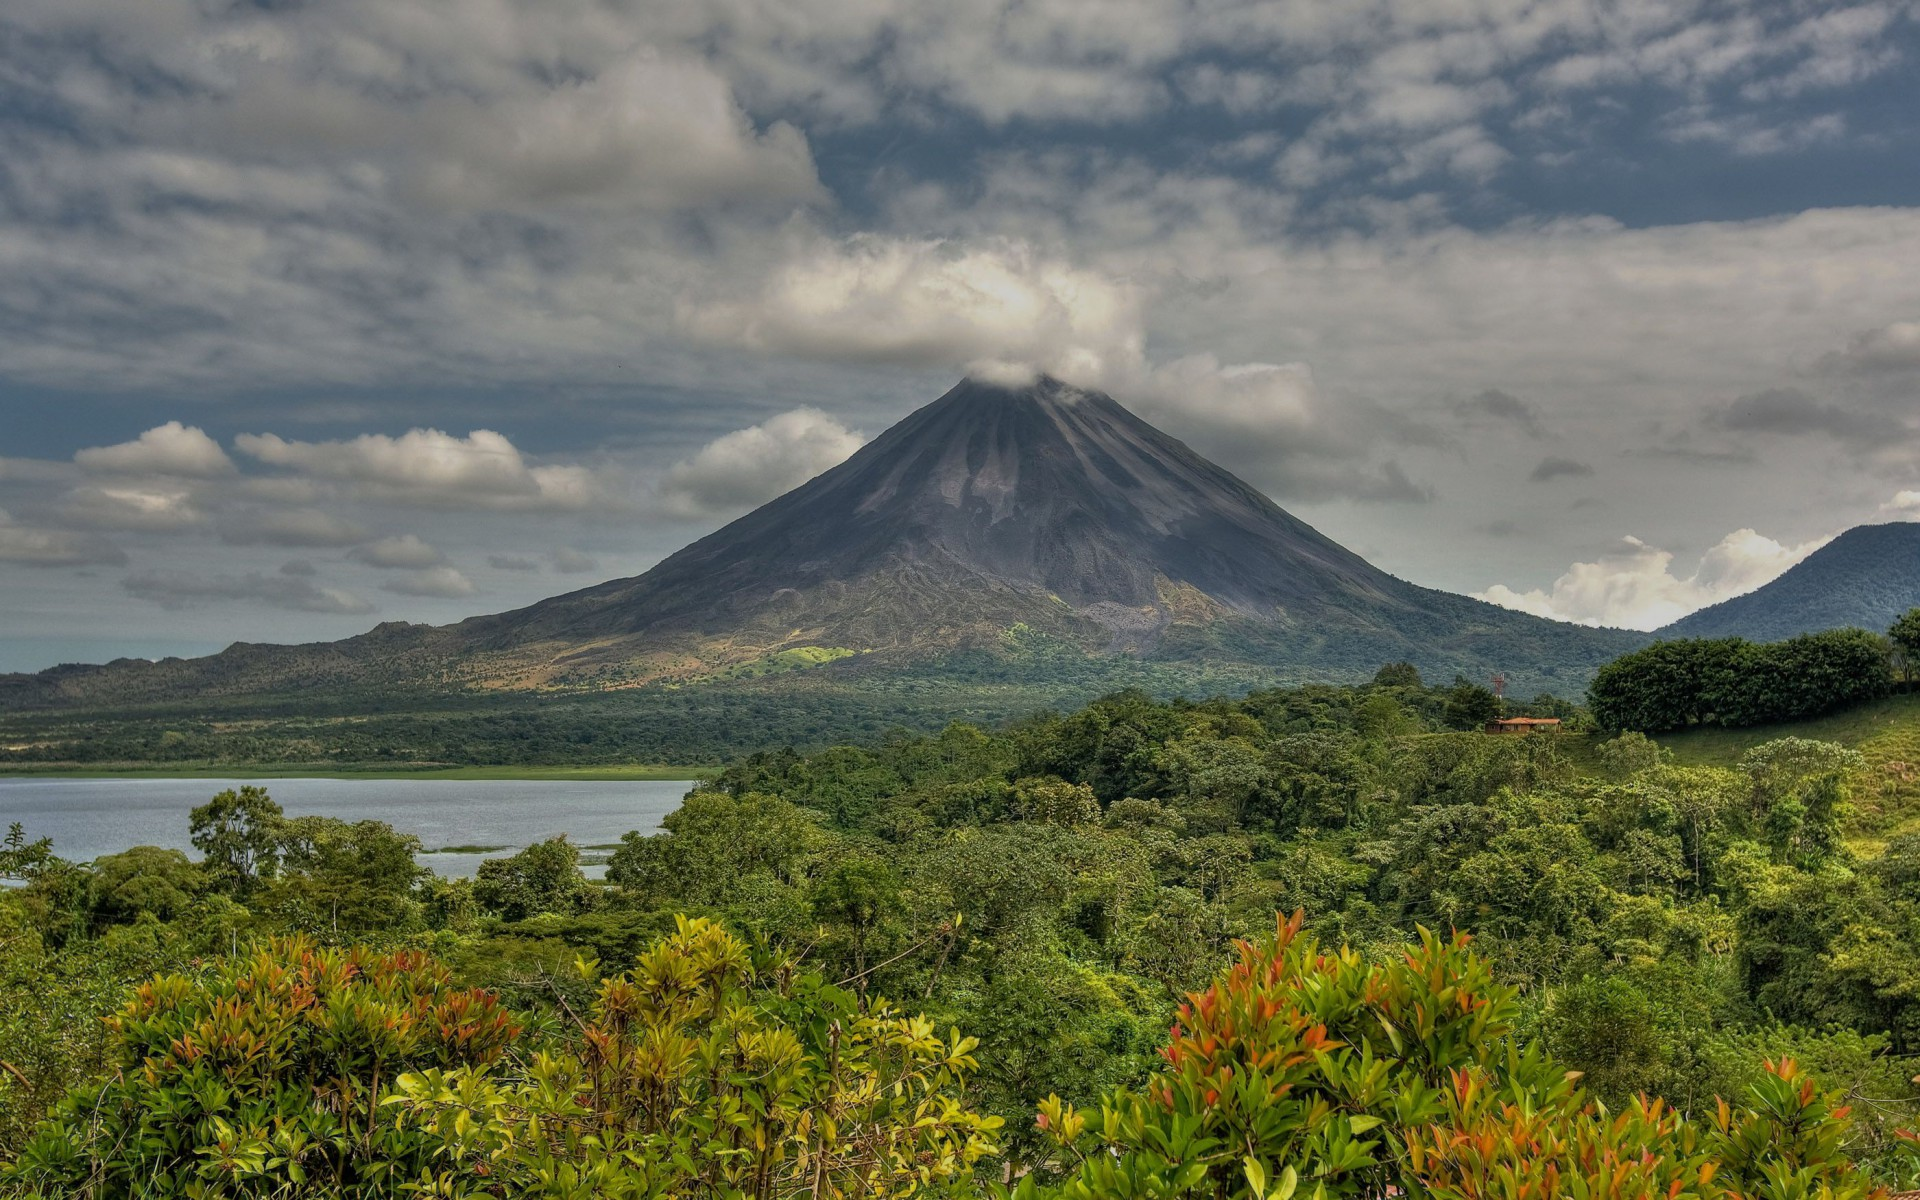 1920x1200 himmel volcano costa rica how to set wallpaper